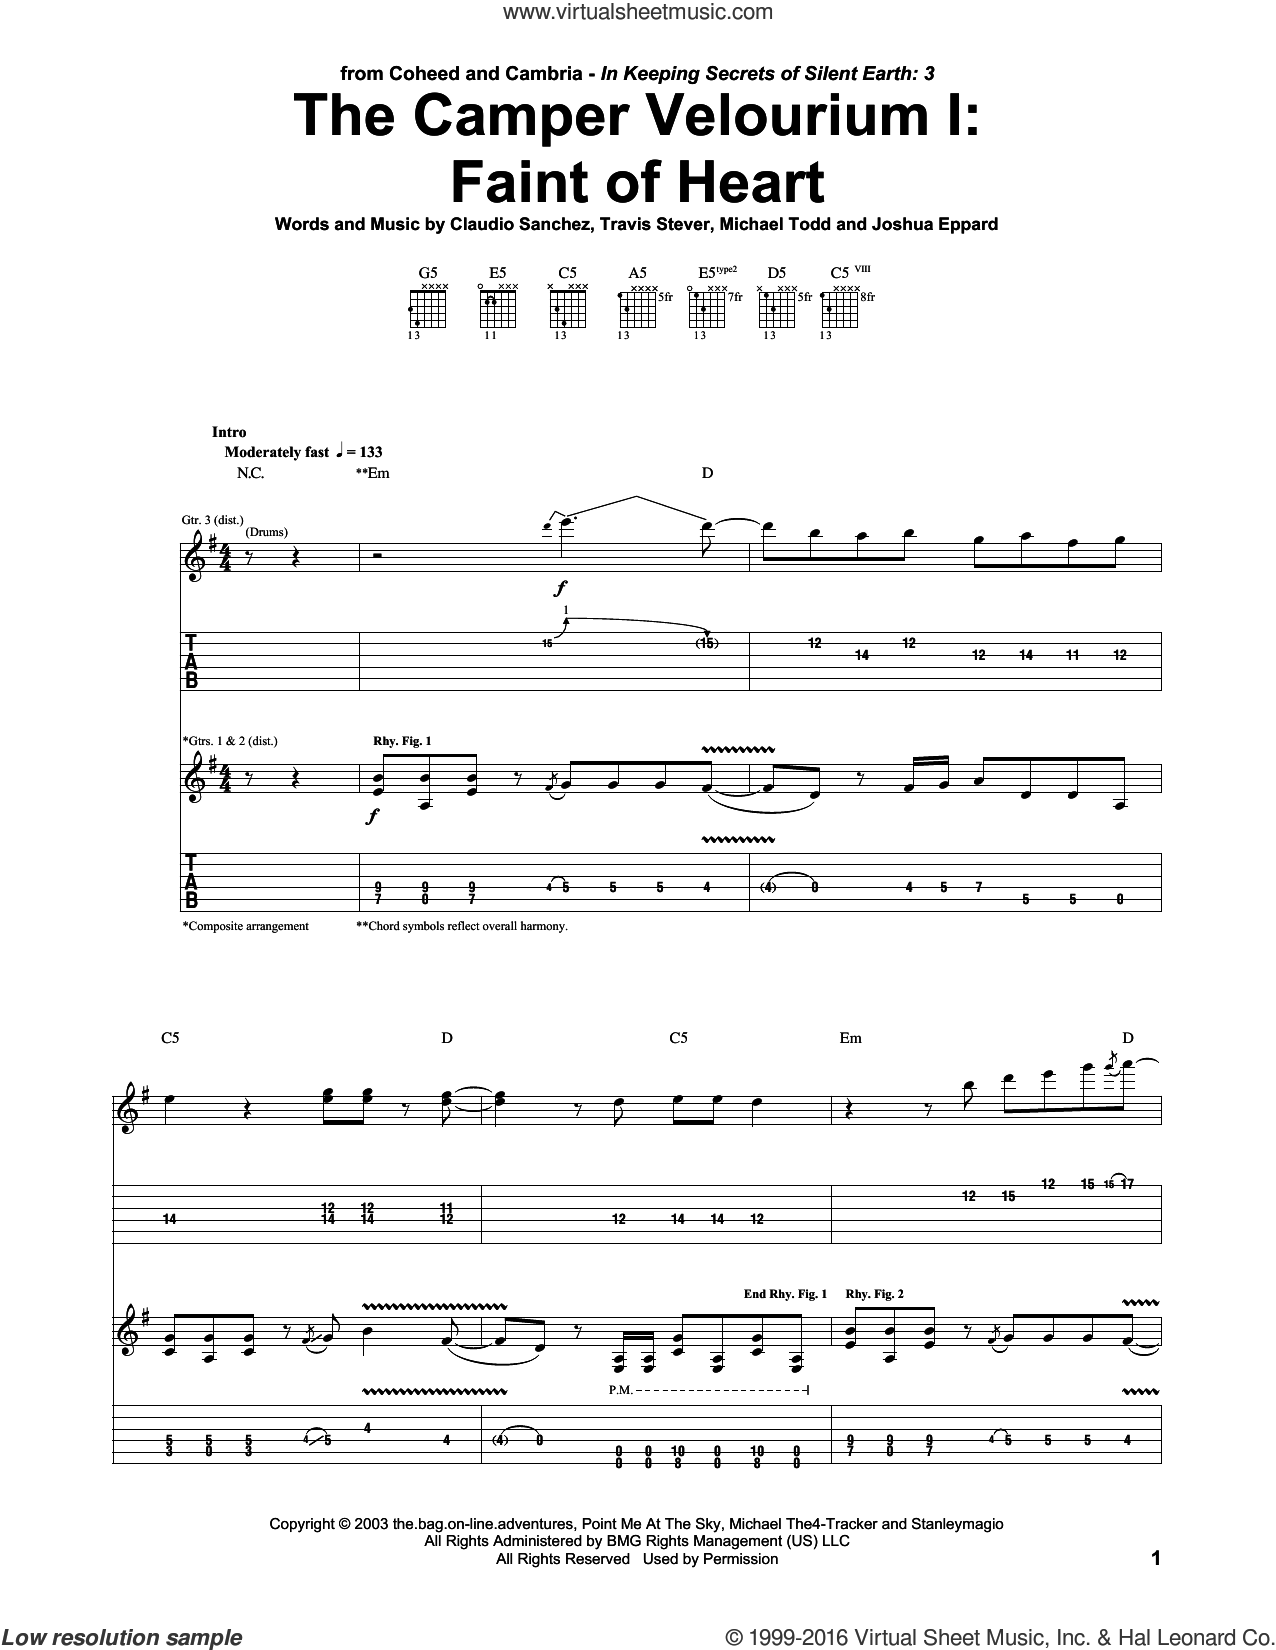 The Camper Velourium I: Faint Of Heart sheet music for guitar (tablature) by Coheed And Cambria. Score Image Preview.